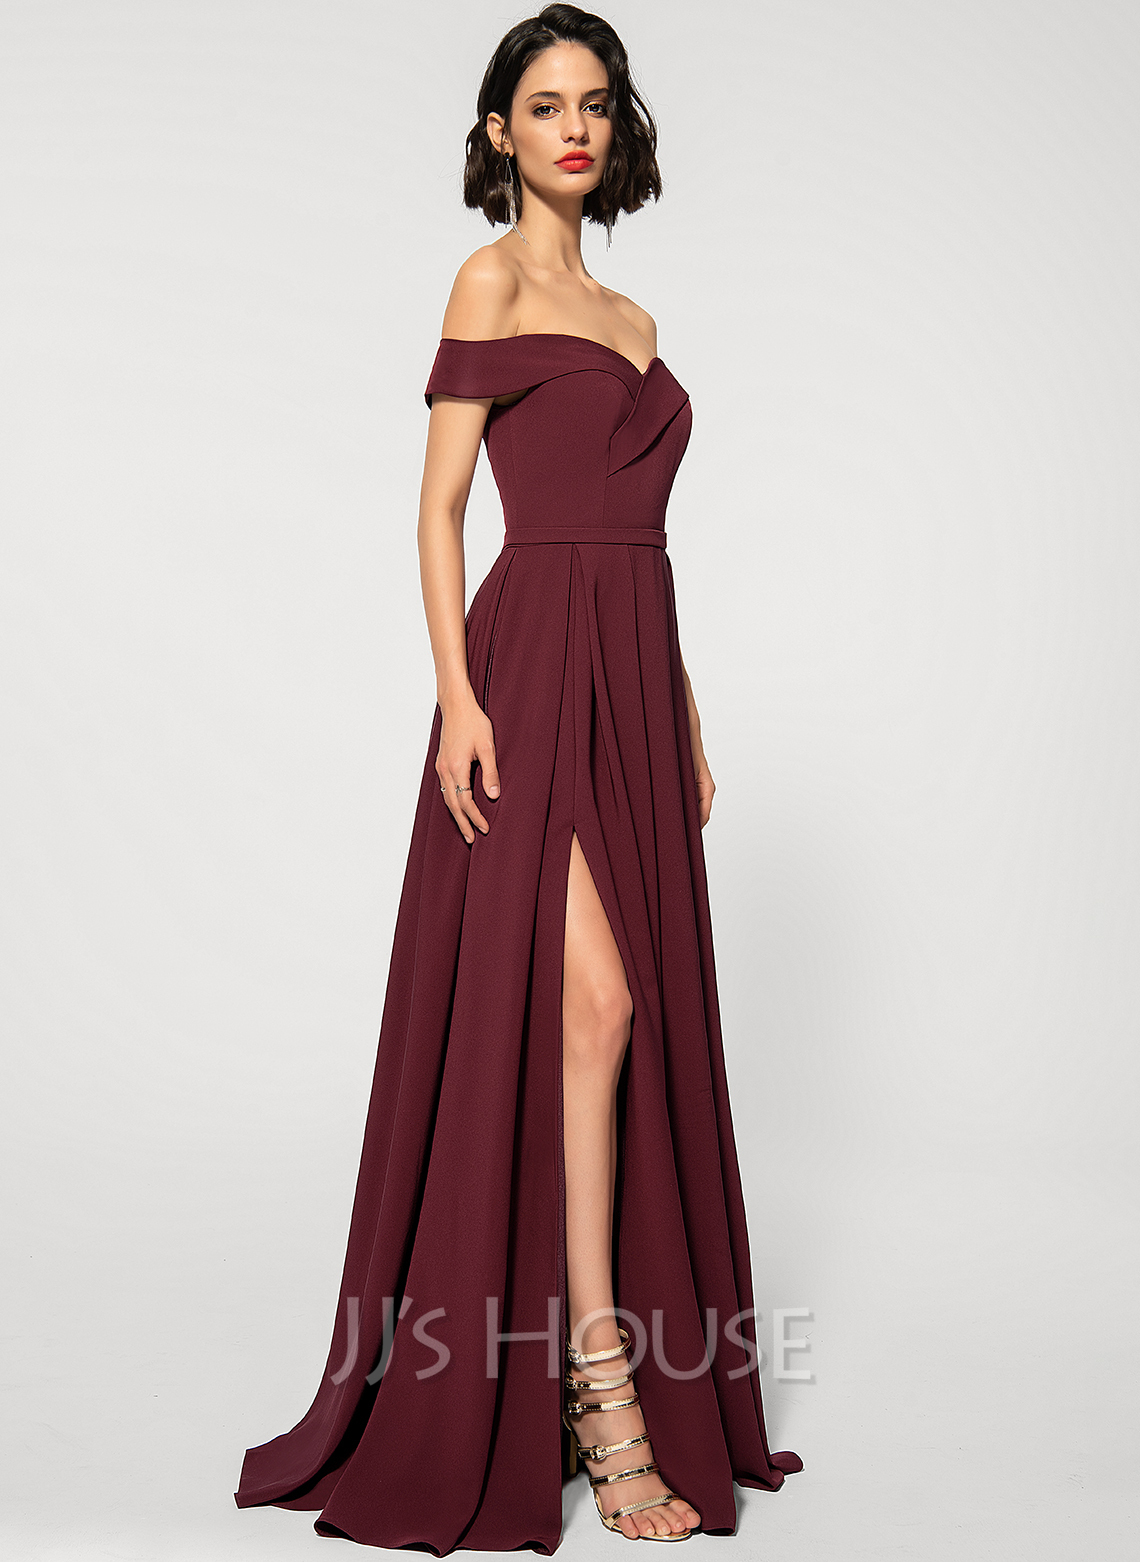 A-Line Off-the-Shoulder Floor-Length Stretch Crepe Evening Dress With Pockets